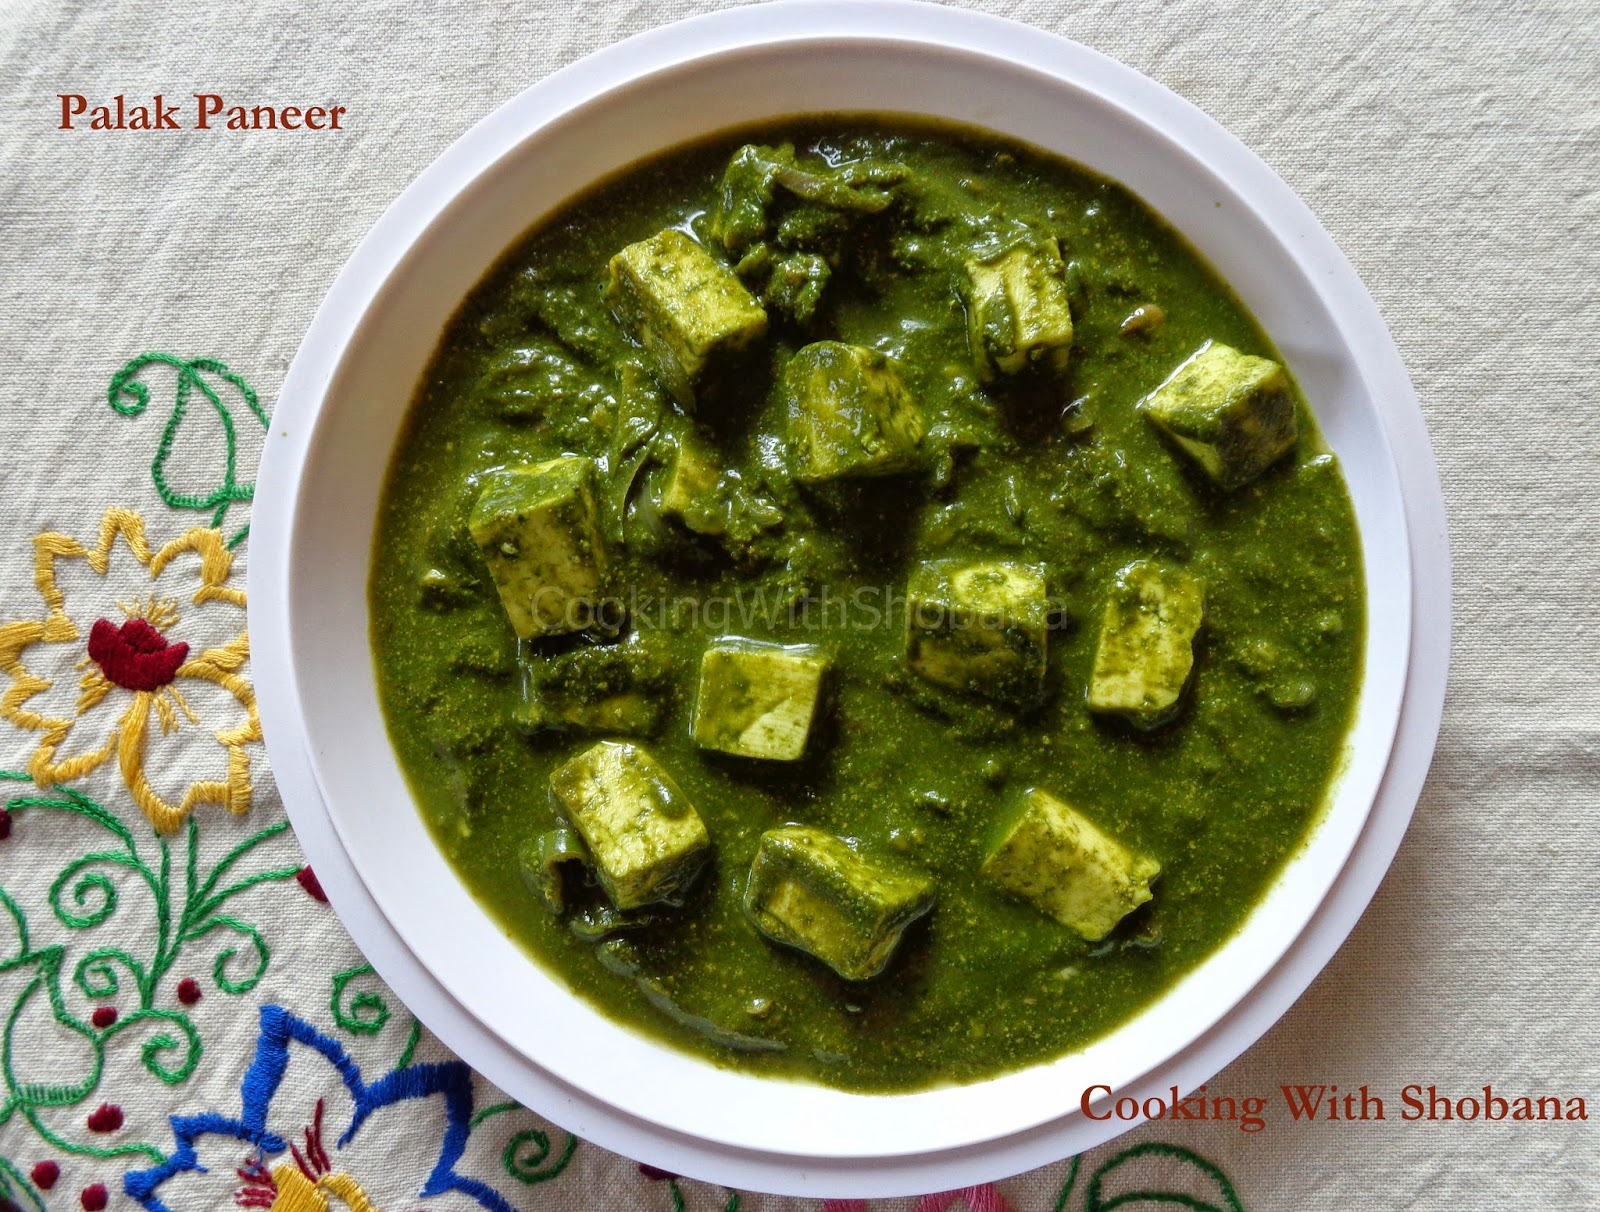 Cooking With Shobana : PALAK PANEER